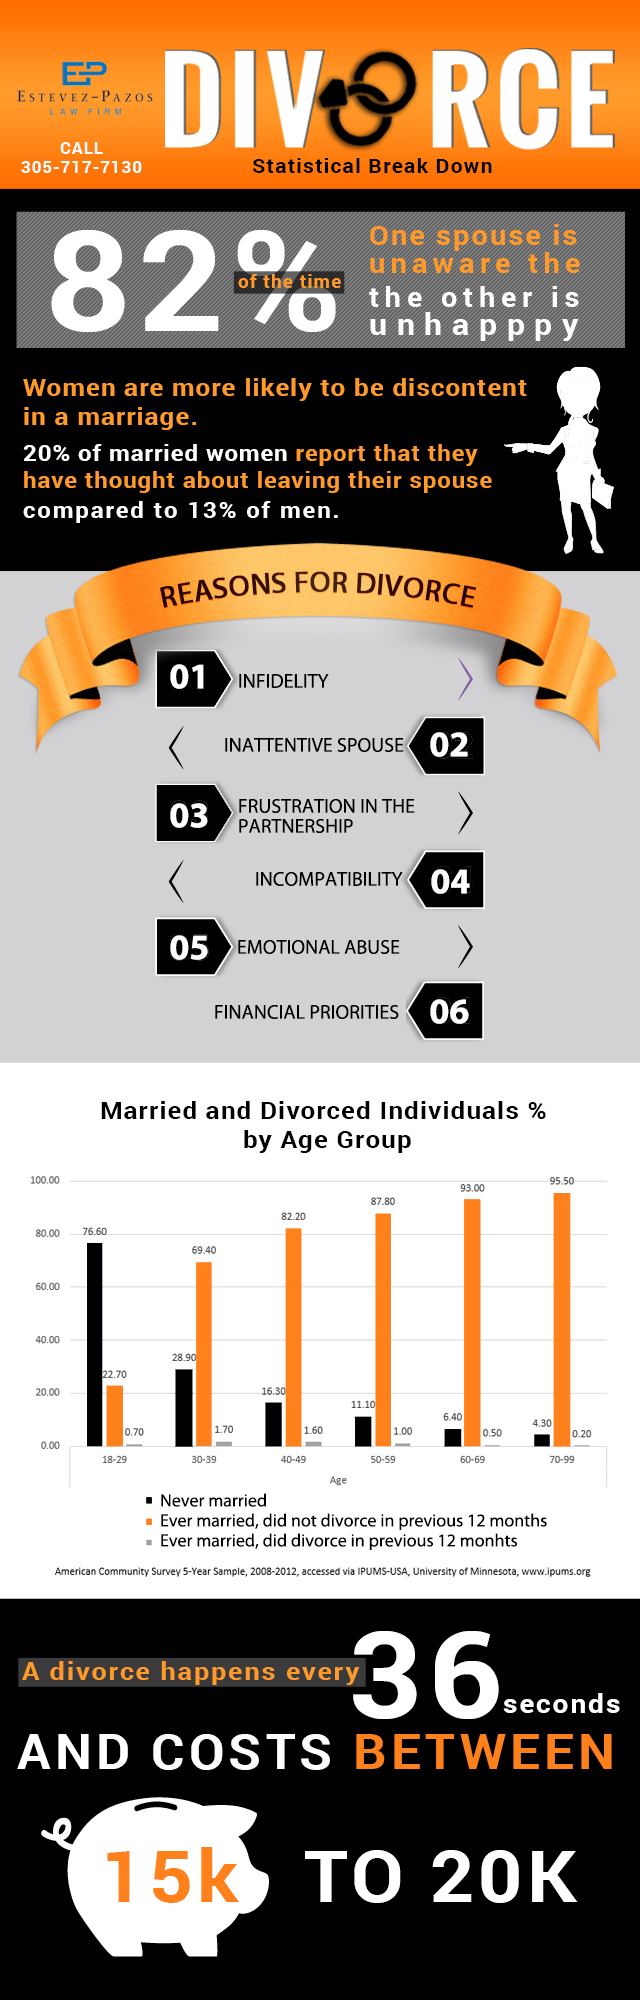 6 Heart-Breaking Facts about Divorce